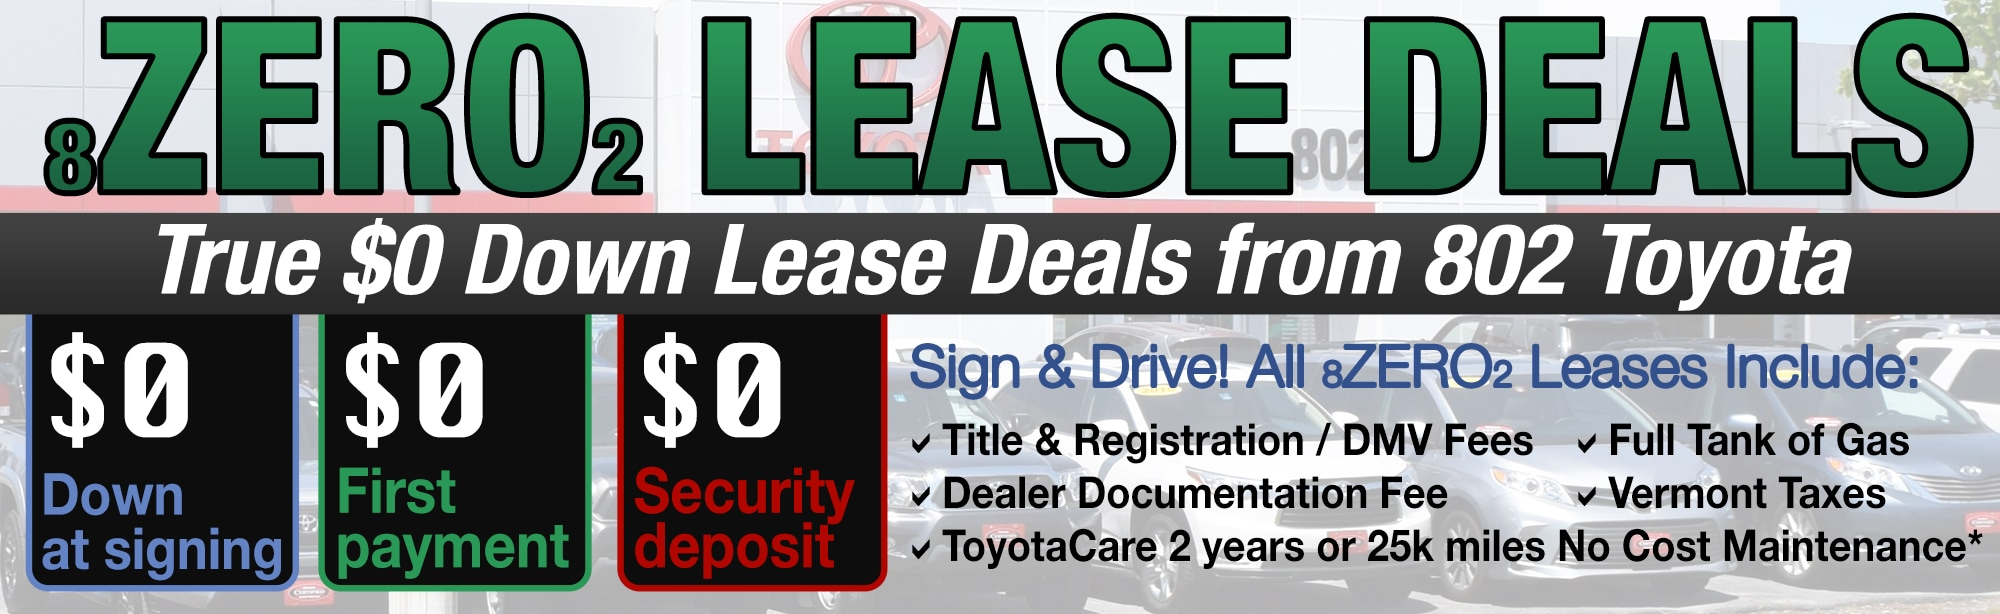 802 Toyota Zero Down Lease Deals